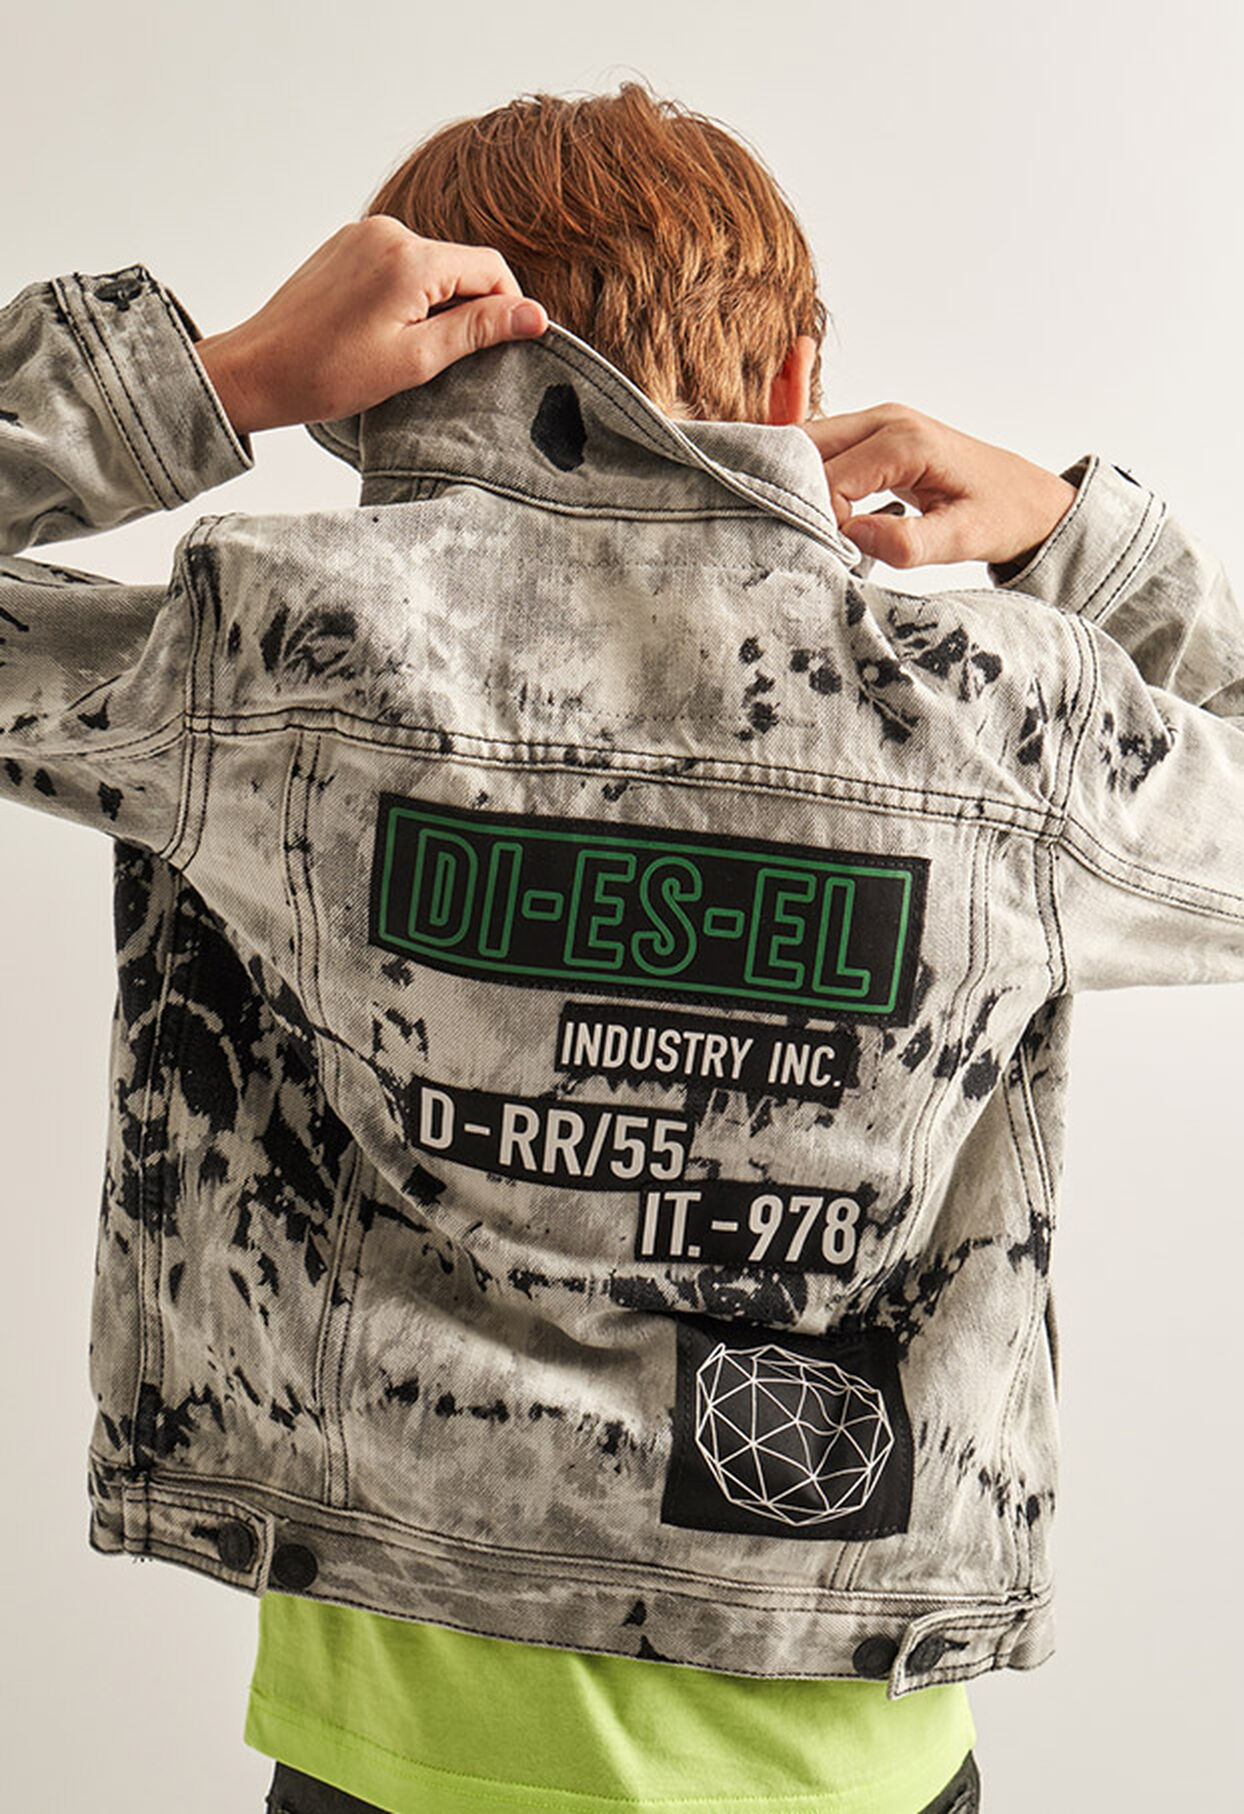 https://hr.diesel.com/dw/image/v2/BBLG_PRD/on/demandware.static/-/Library-Sites-DieselMFSharedLibrary/default/dw9fd09078/CATEGORYOV/2x2_90.jpg?sw=1244&sh=1814